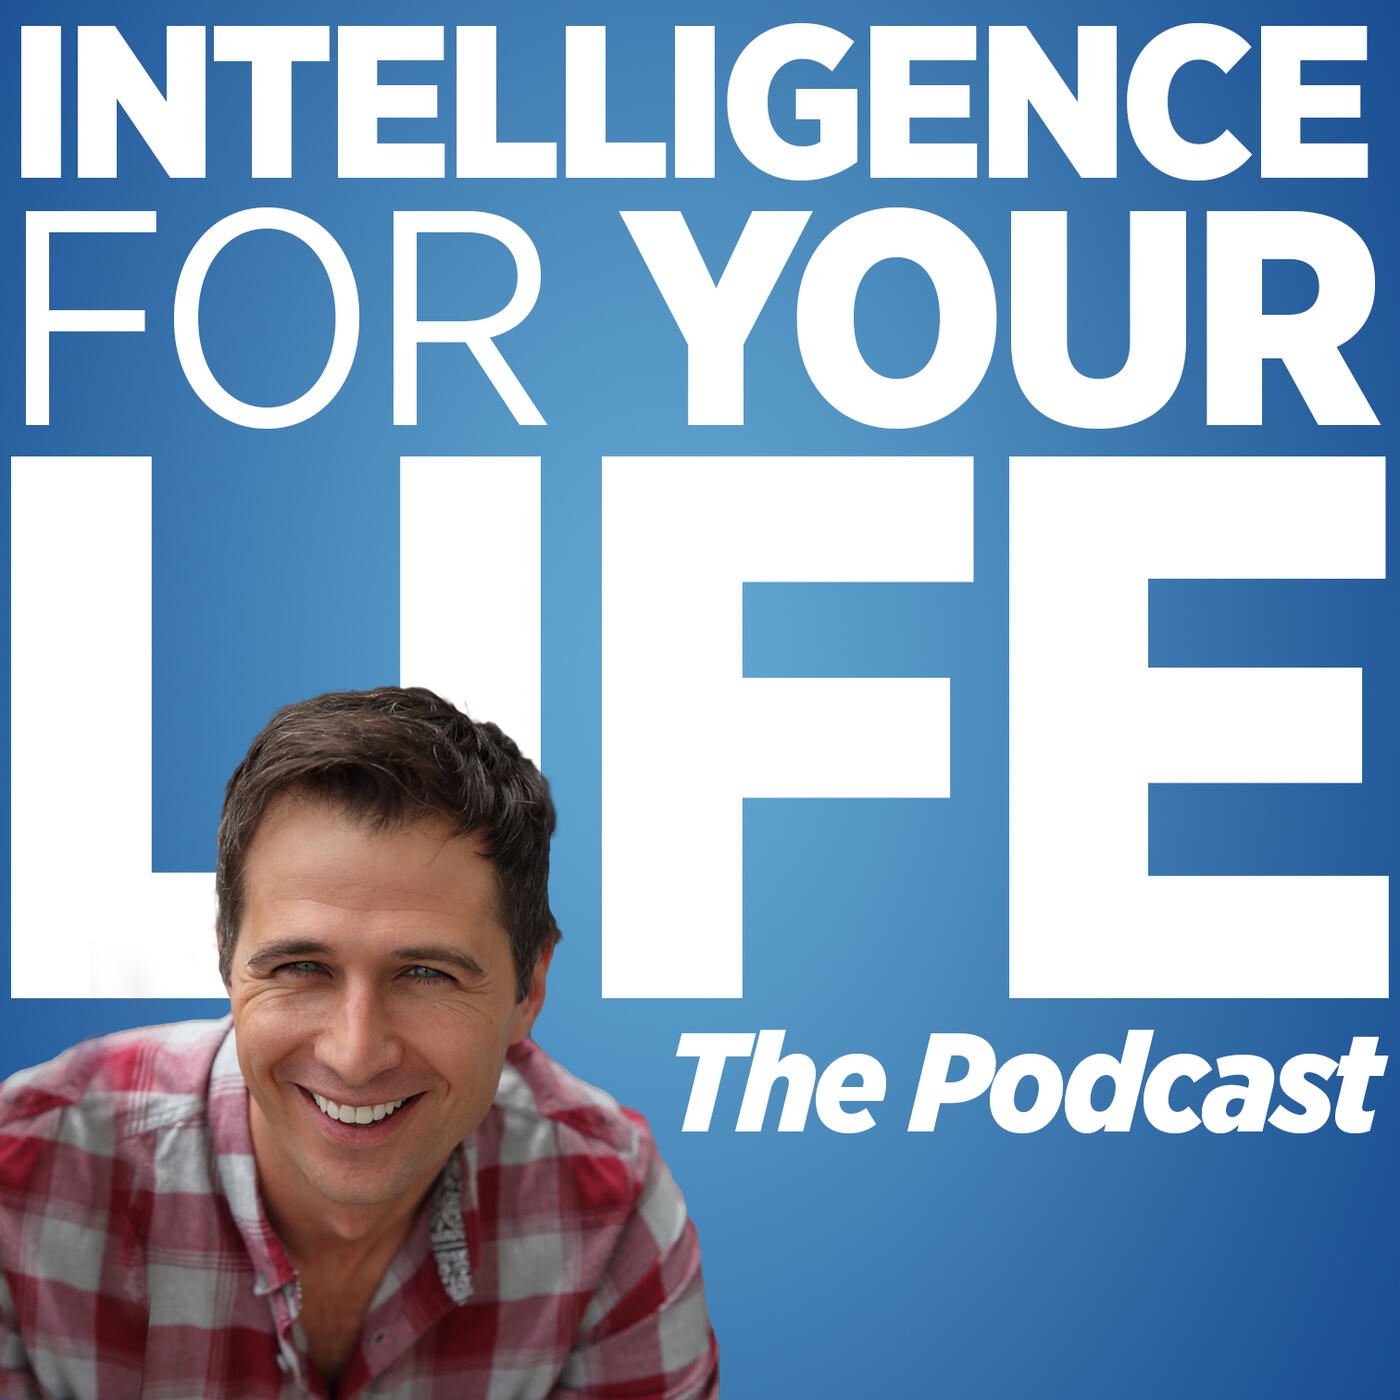 Intelligence For Your Life The Podcast